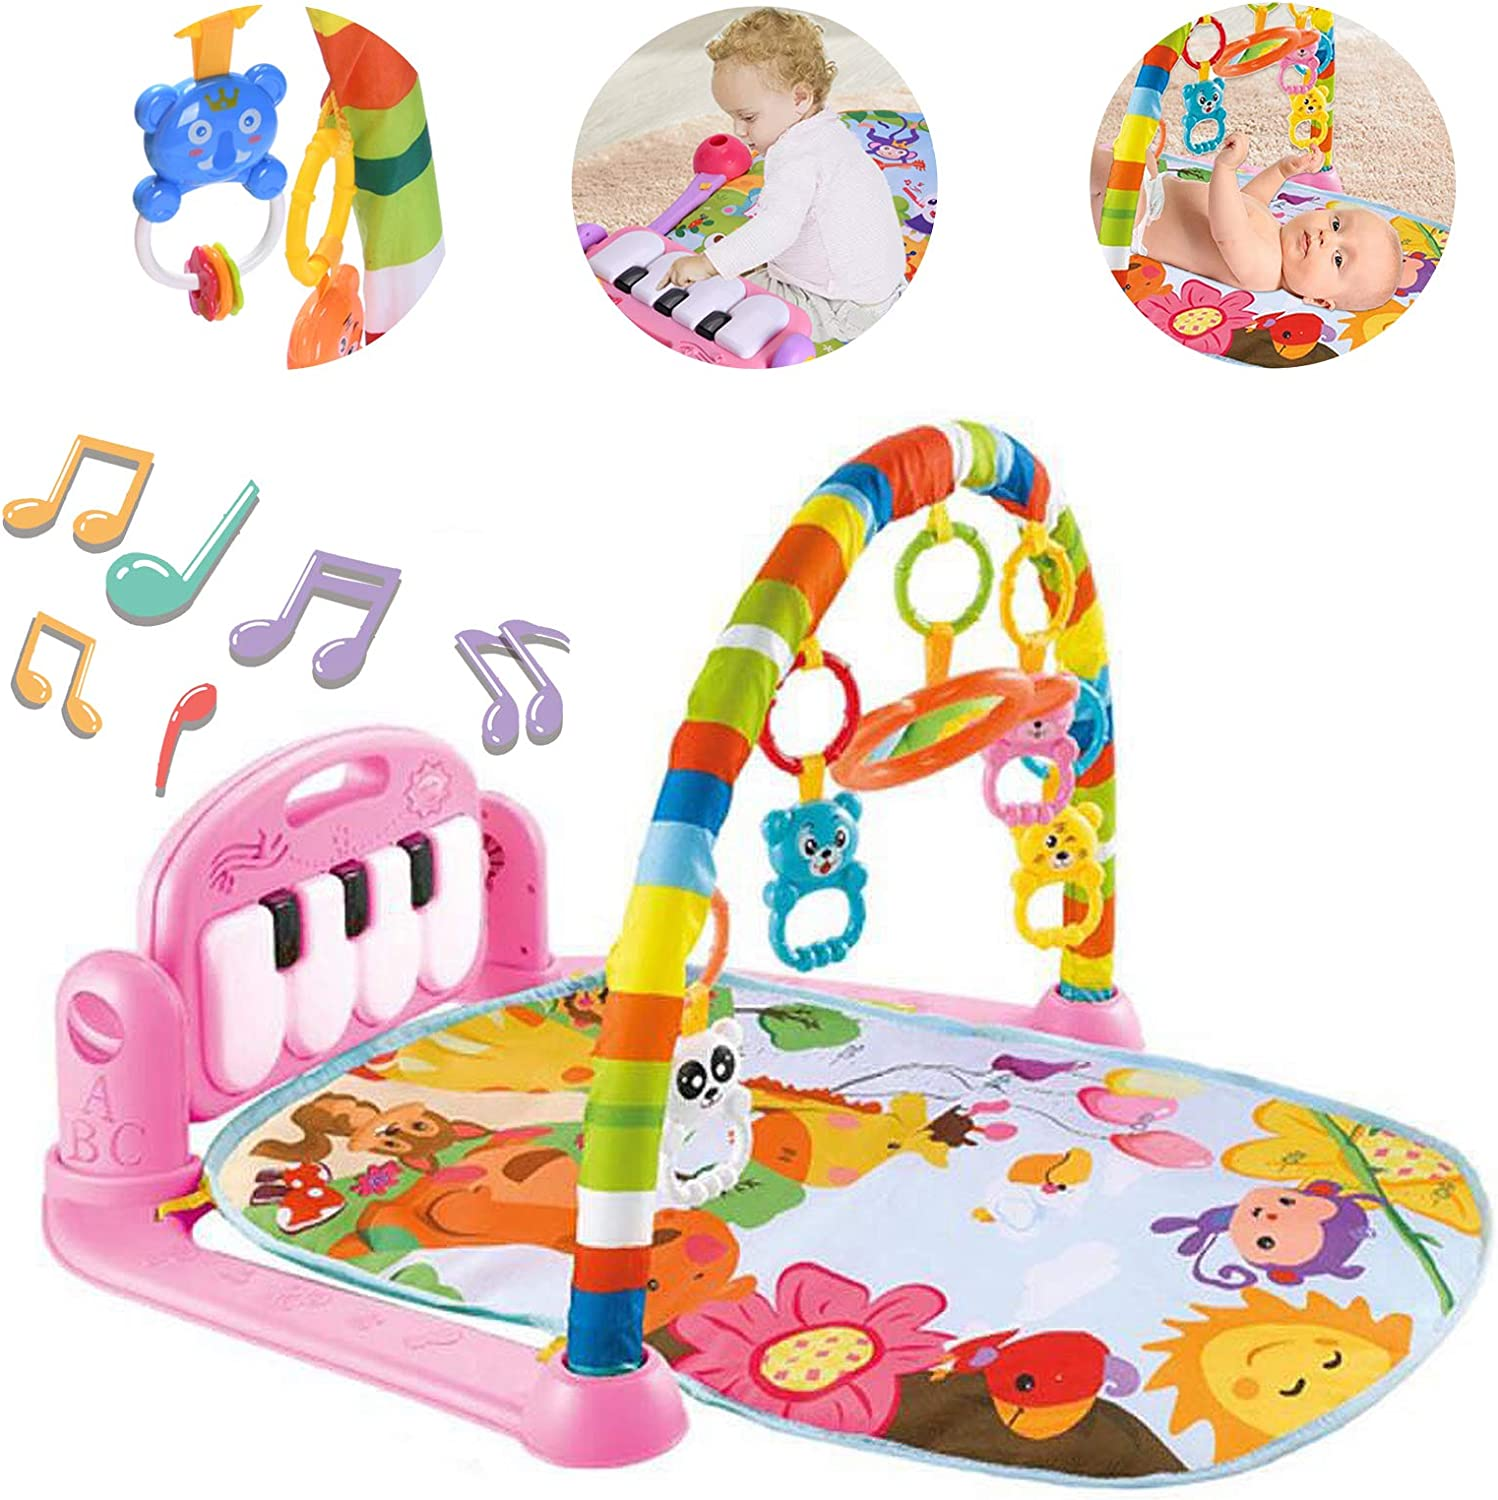 Baby Play Mat Activity Gym with Kick Piano Keyboard, Baby Jungle Gym Mat Designed with Colorful and Detachable Baby Toys in Activity Center for Tummy Time Boys and Girls Aged 0 to 3 to 12 Months